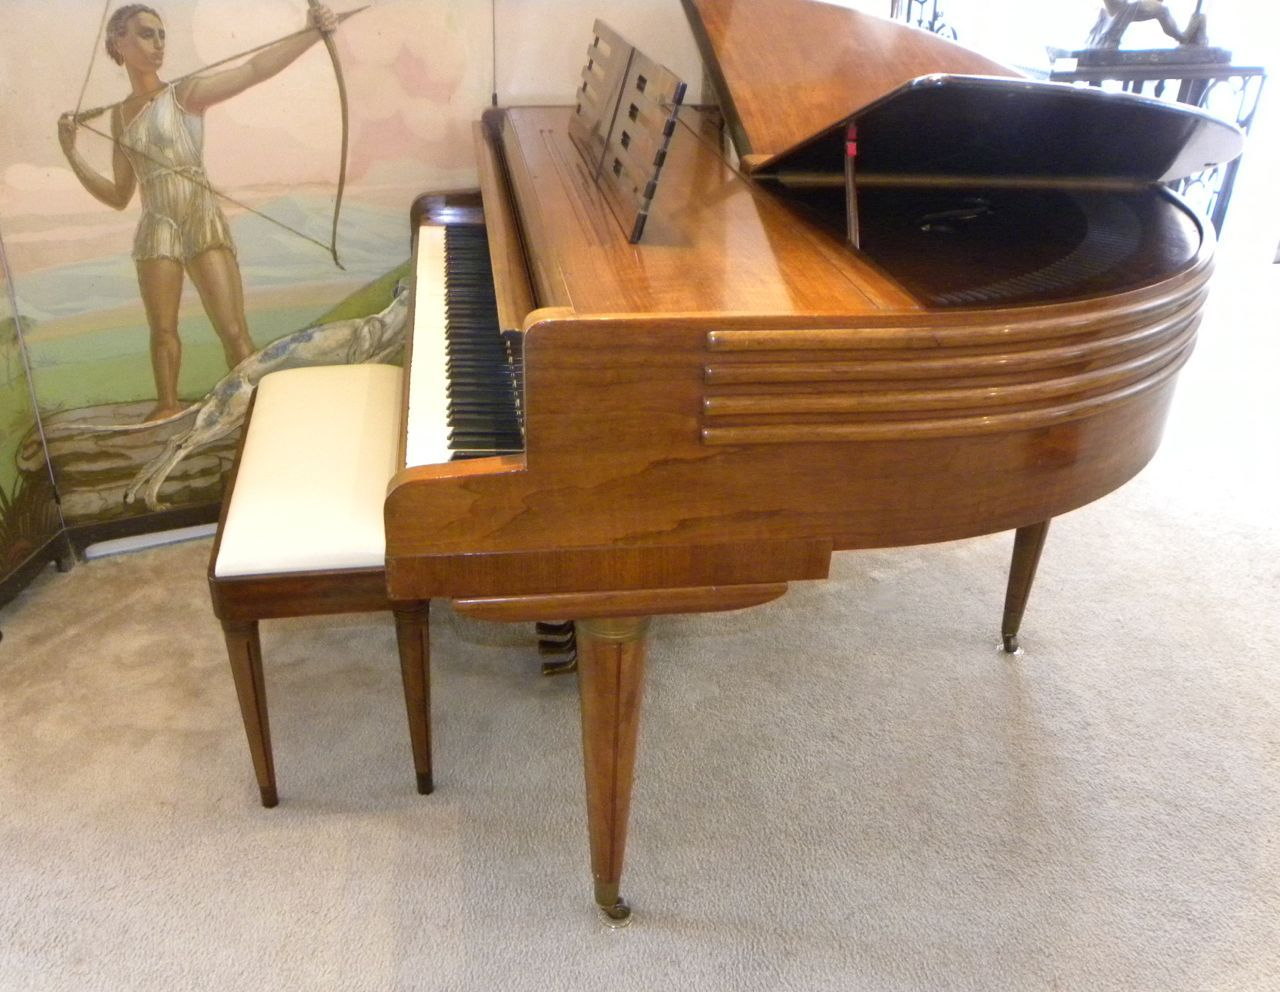 1937 Streamline Art Deco Butterfly Wurlitzer Baby Grand Piano Miscellaneous Artdecocollection Com Chairs And Sofas And Art Deco